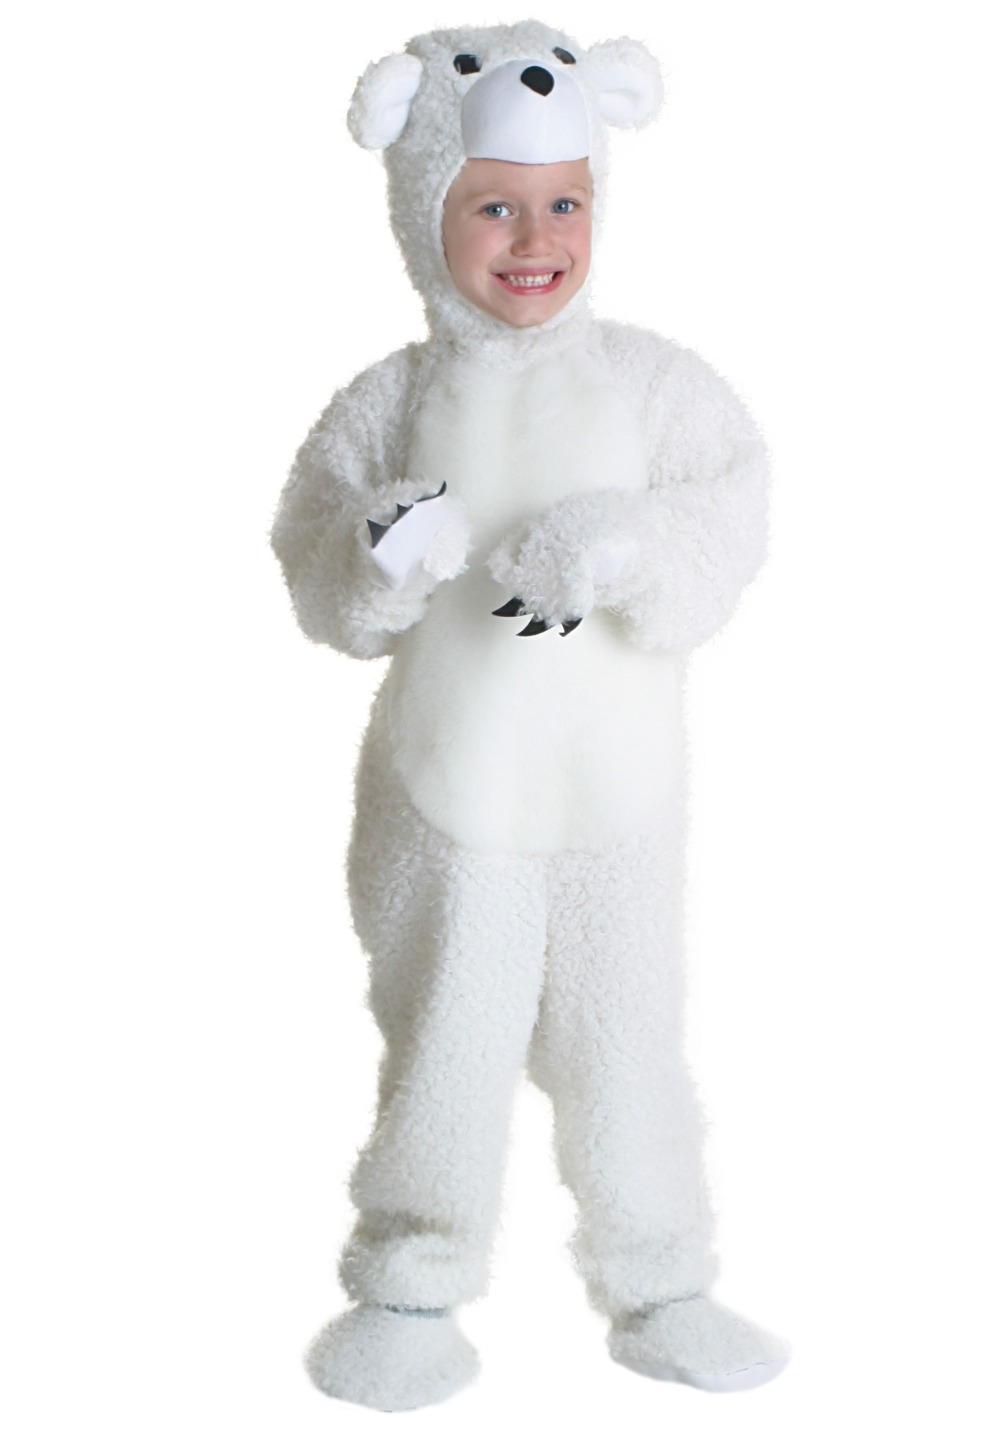 qi county halloween costume bear animal cosplay costume for children white 2t 4t xl - Halloween Costumes 4t